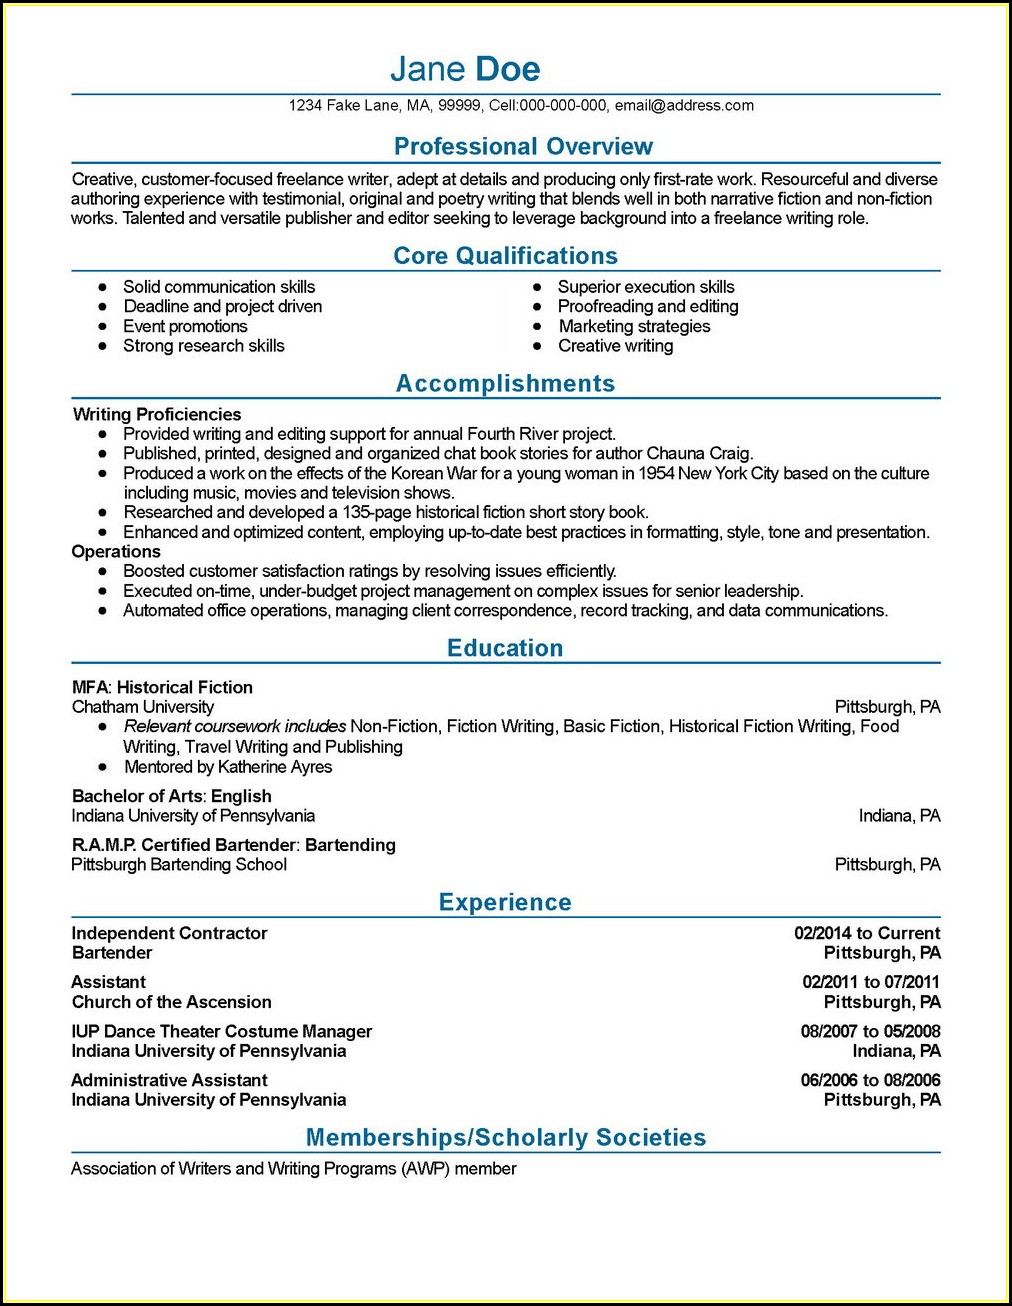 Resume Writing Service Philadelphia Pa